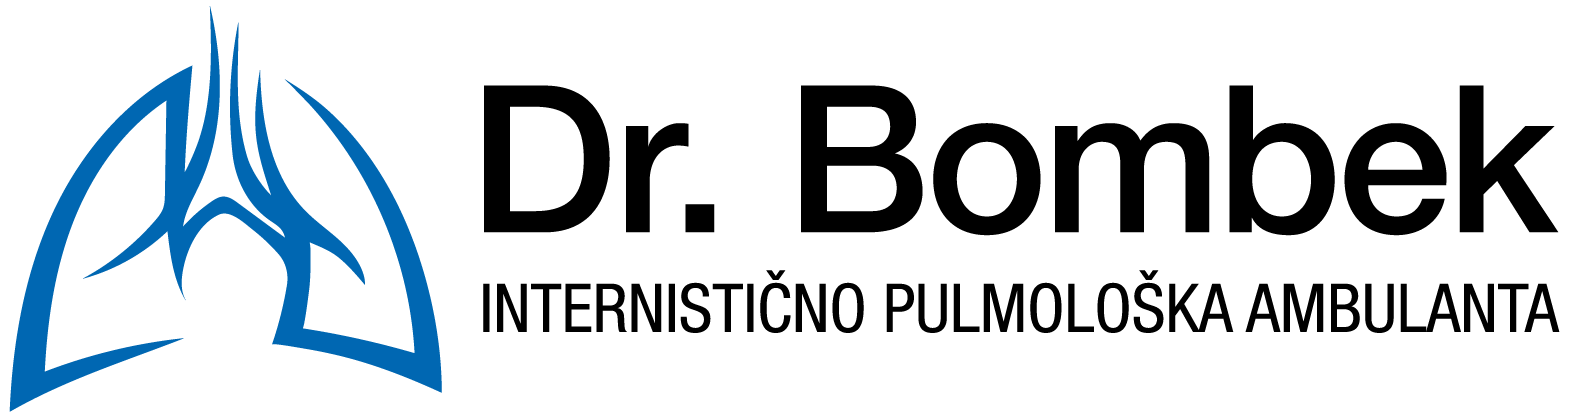 Ambulanta dr. Bombek